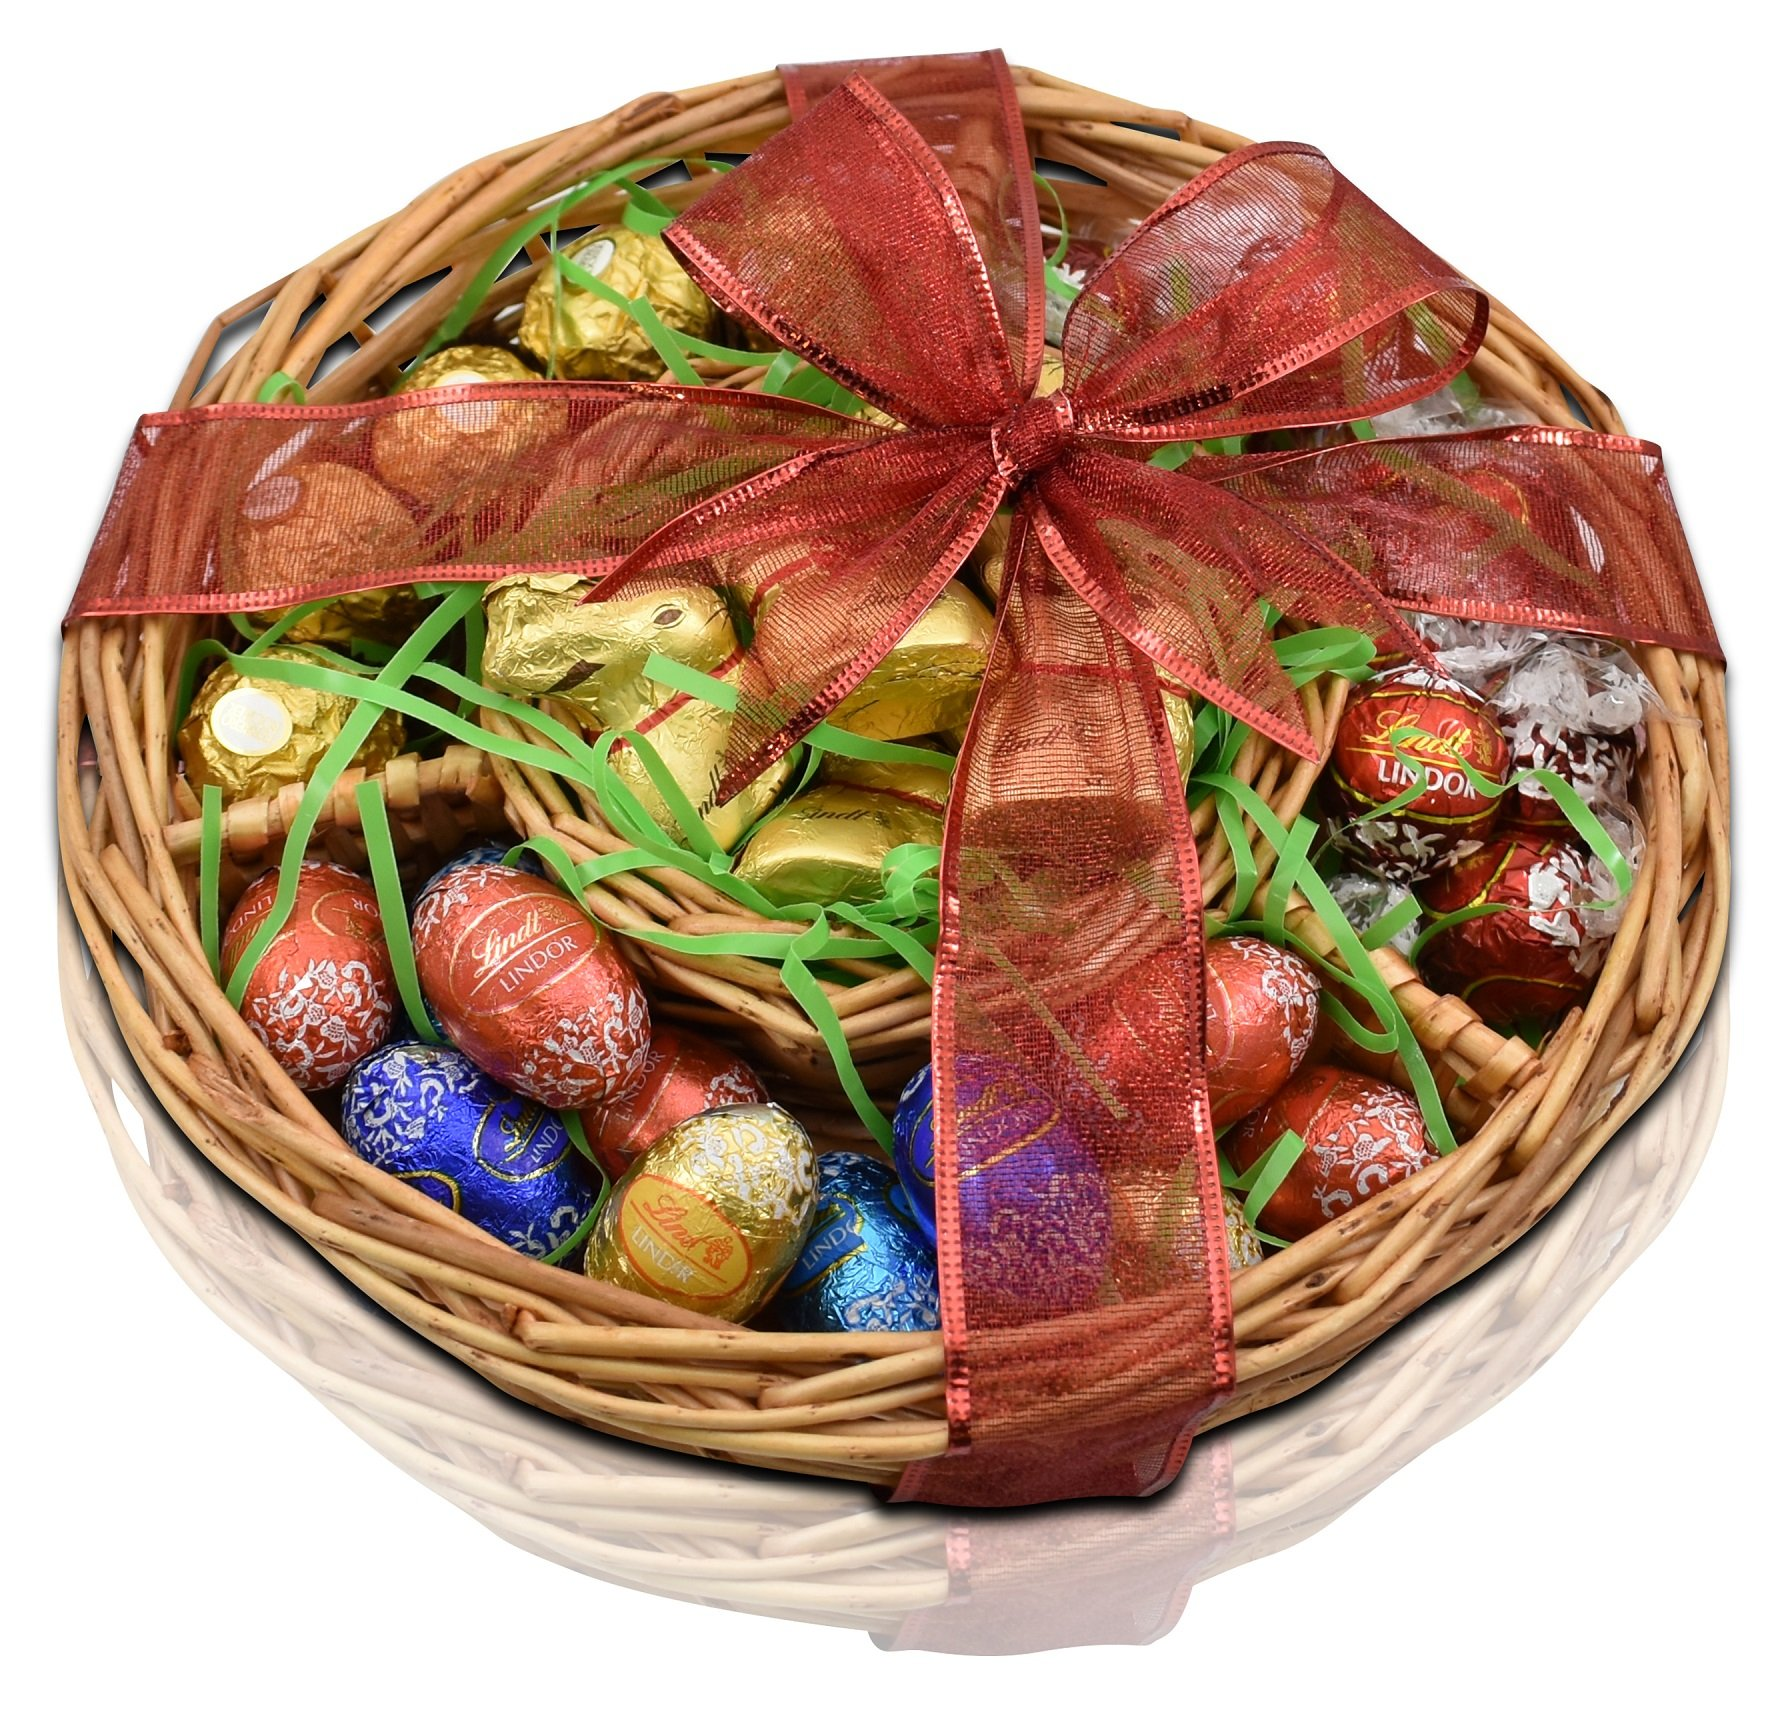 Amazon deluxe easter gift basket gourmet chocolate gifts gift universe lindt and ferrero rocher gift basket lindt gold bunnies lindor milk negle Image collections